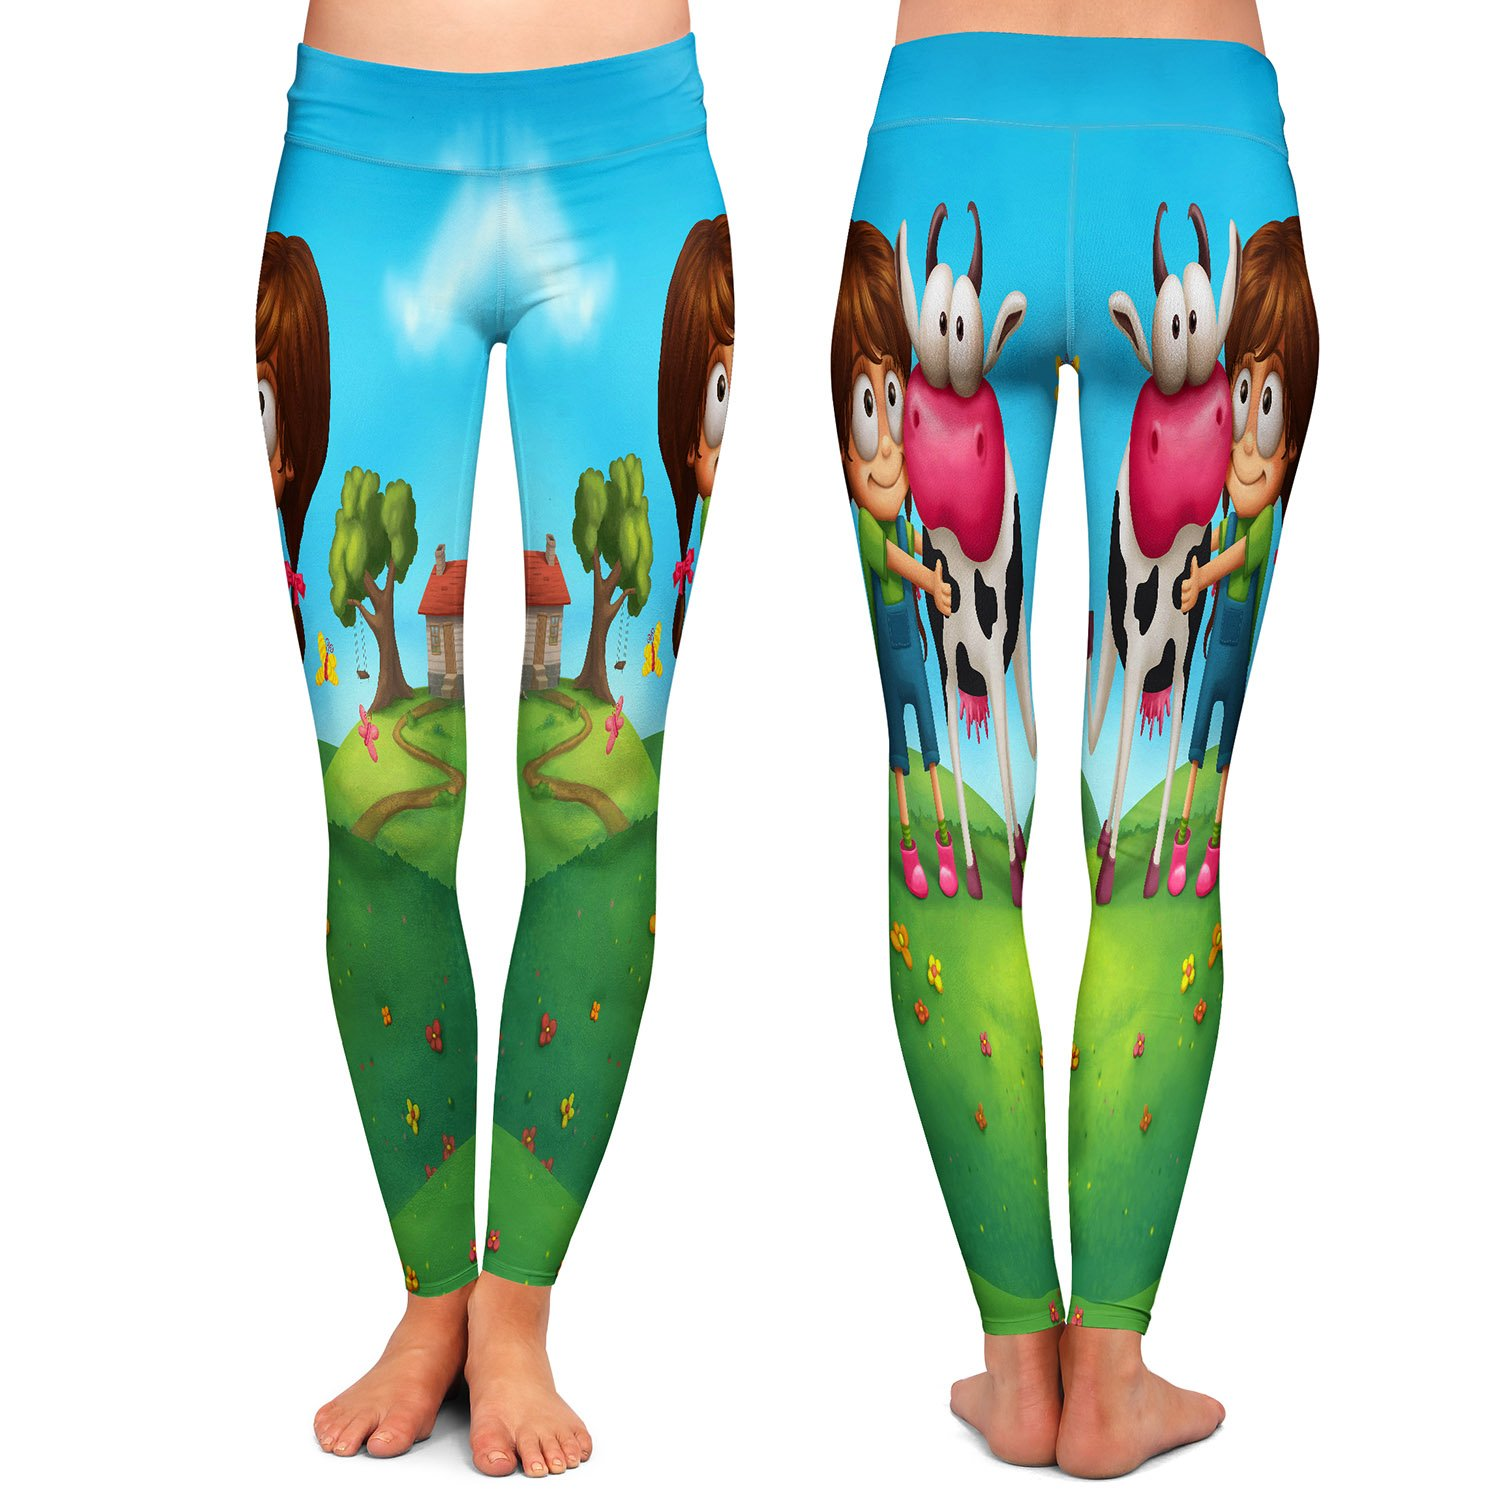 My Moo Athletic Yoga Leggings from DiaNoche Designs by Tooshtoosh